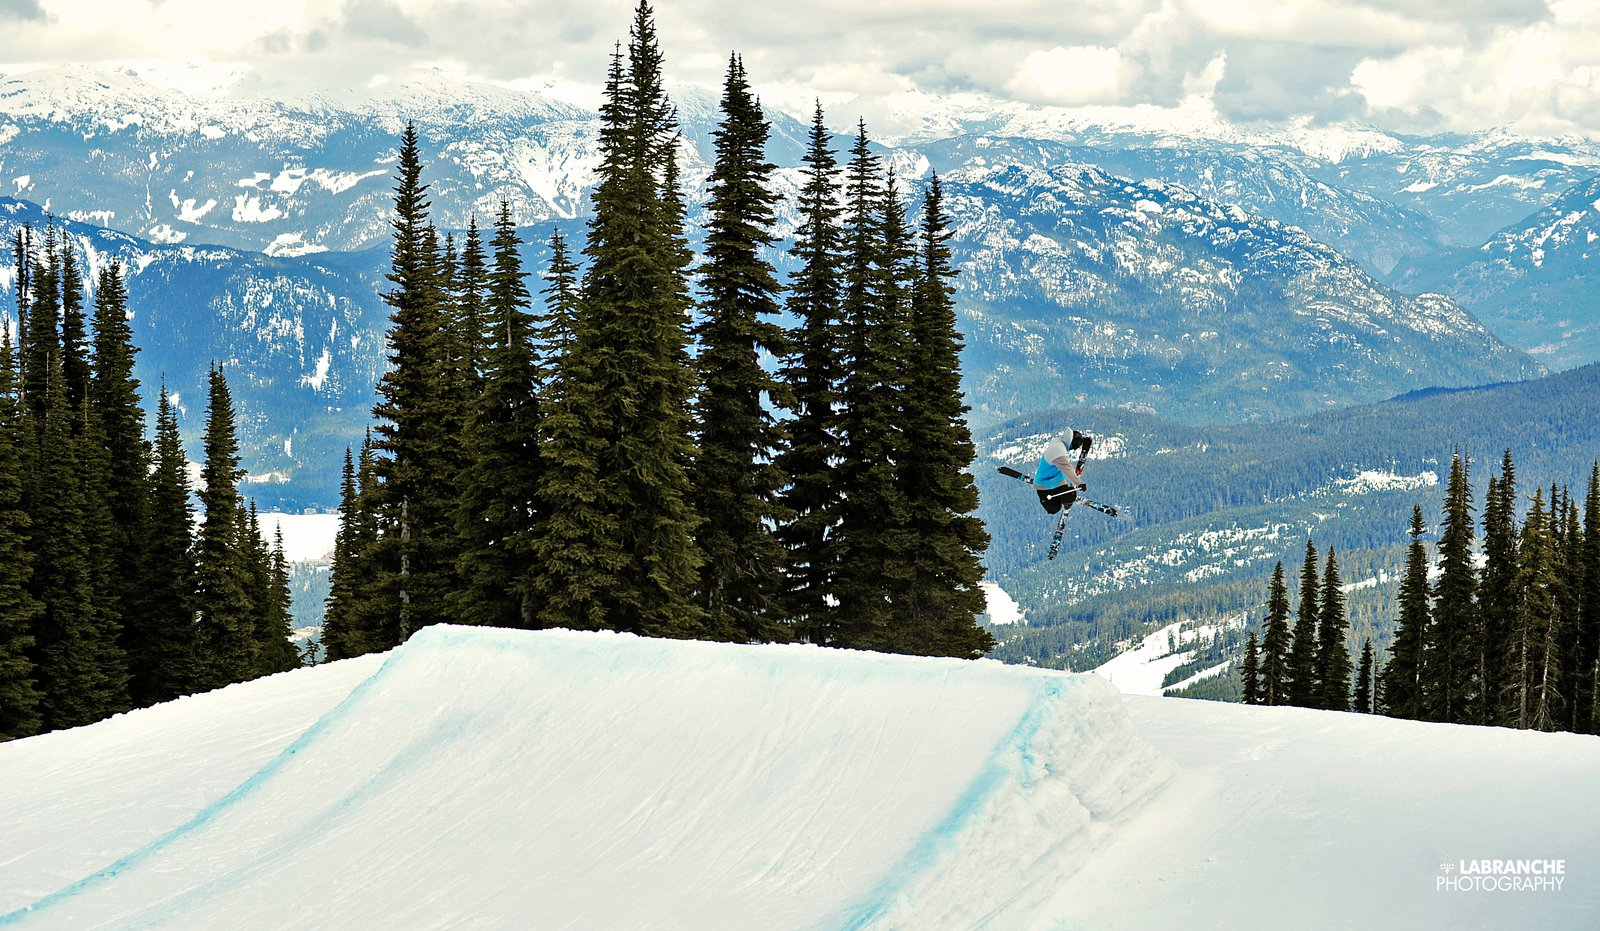 Seb Tremblay lappin in Whist park